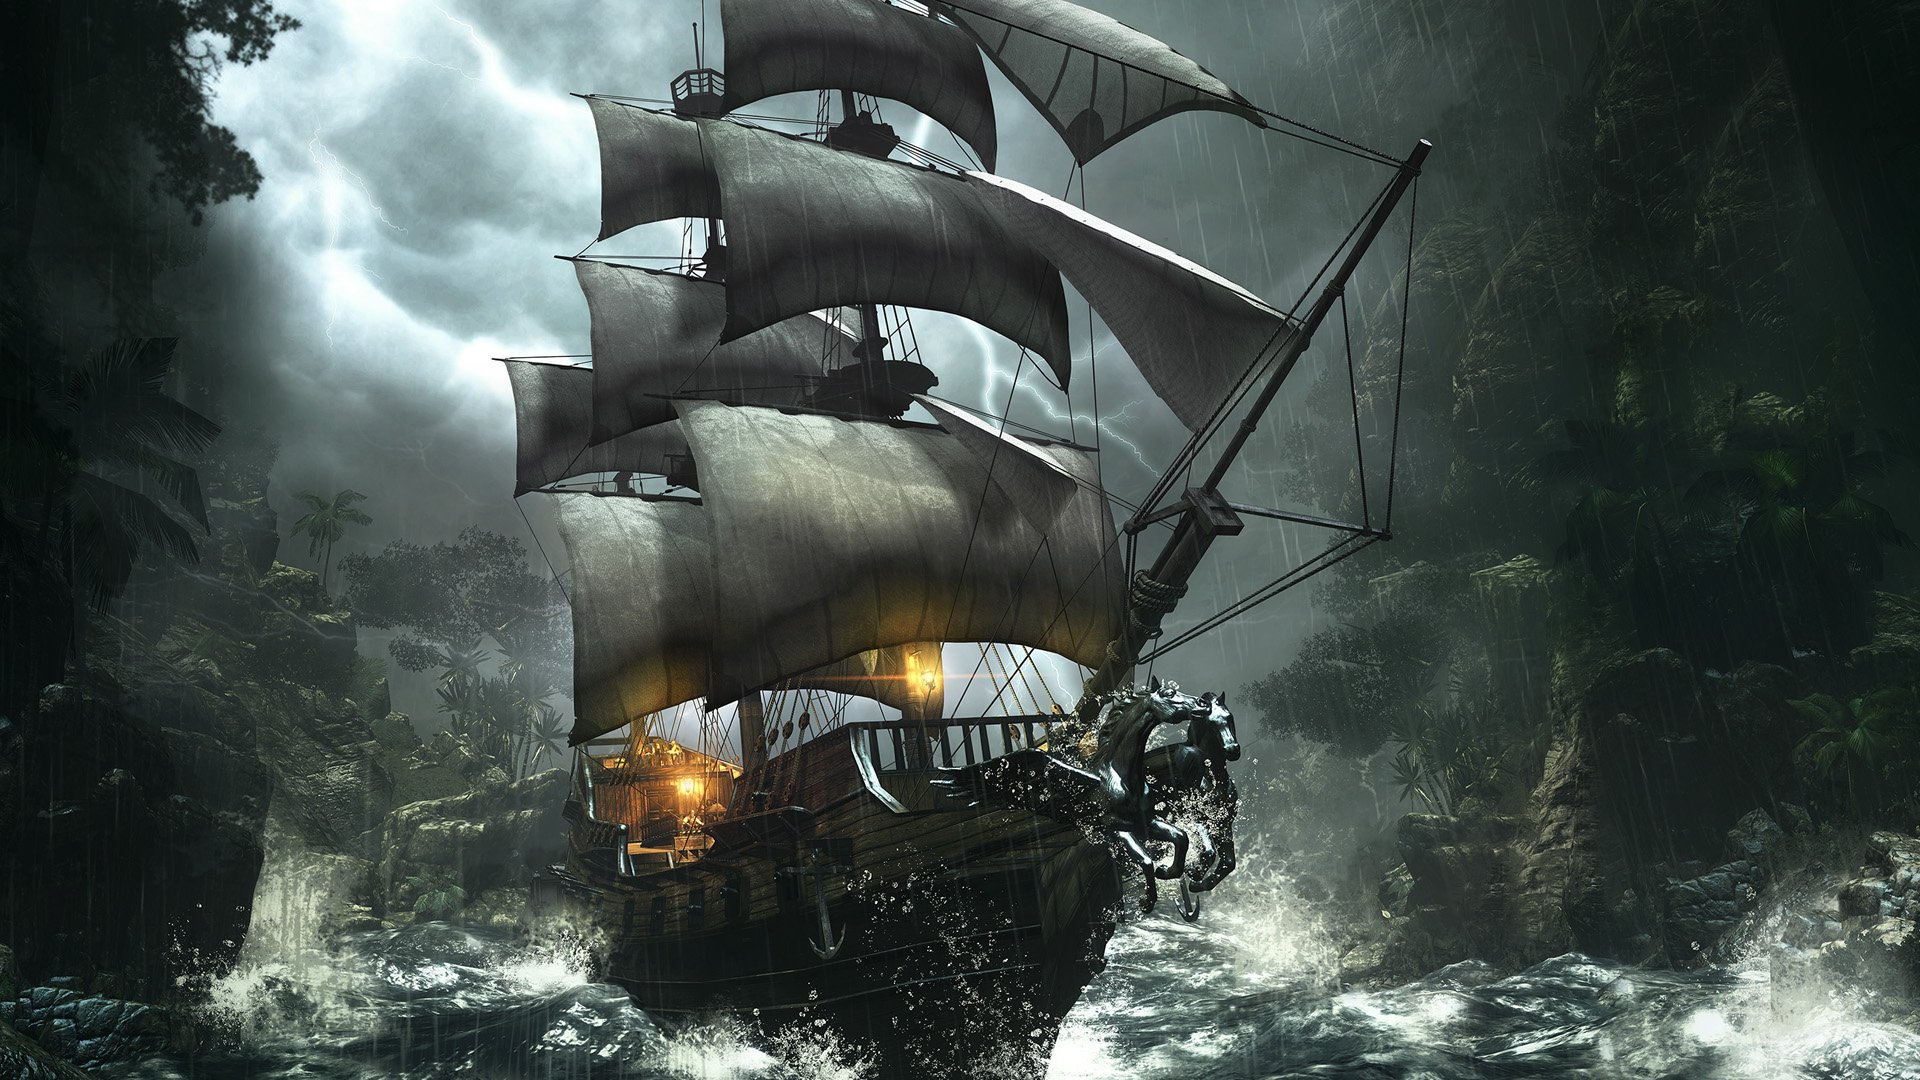 Download Pirate Ship Wallpaper Desktop 1Dksc in your computer 1920x1080